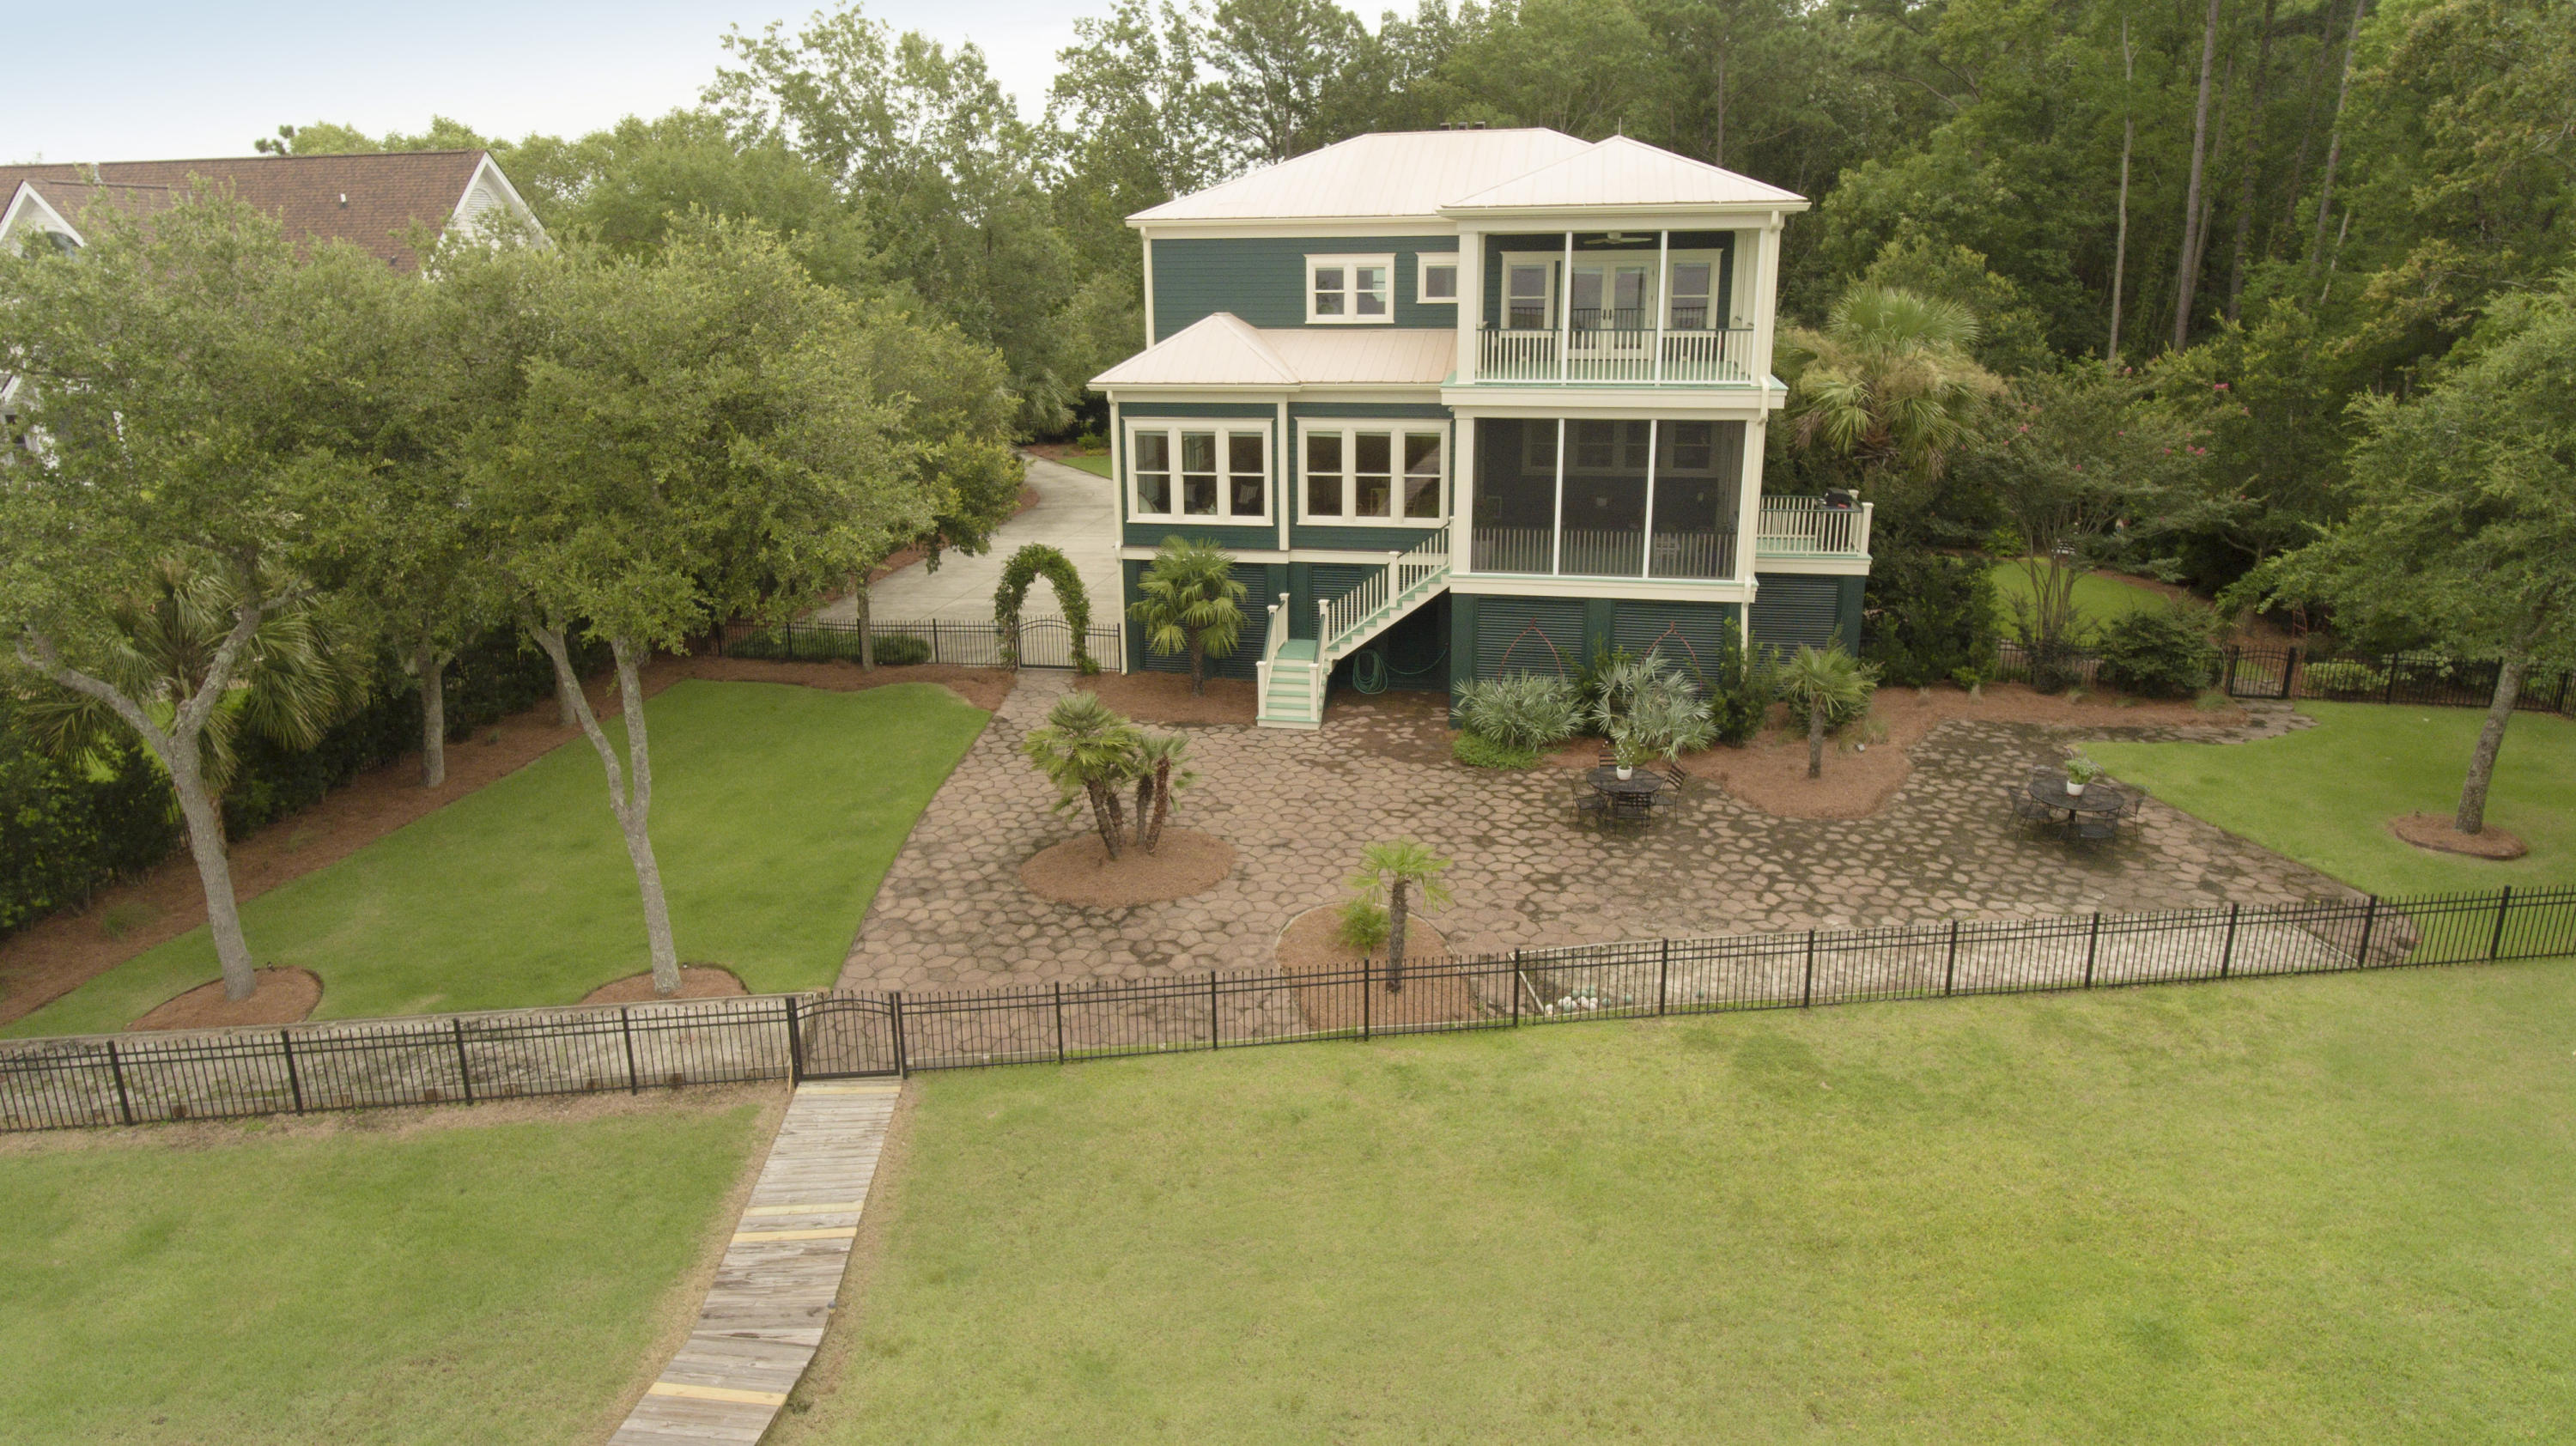 Rivertowne On The Wando Homes For Sale - 2212 Hartfords Bluff, Mount Pleasant, SC - 47